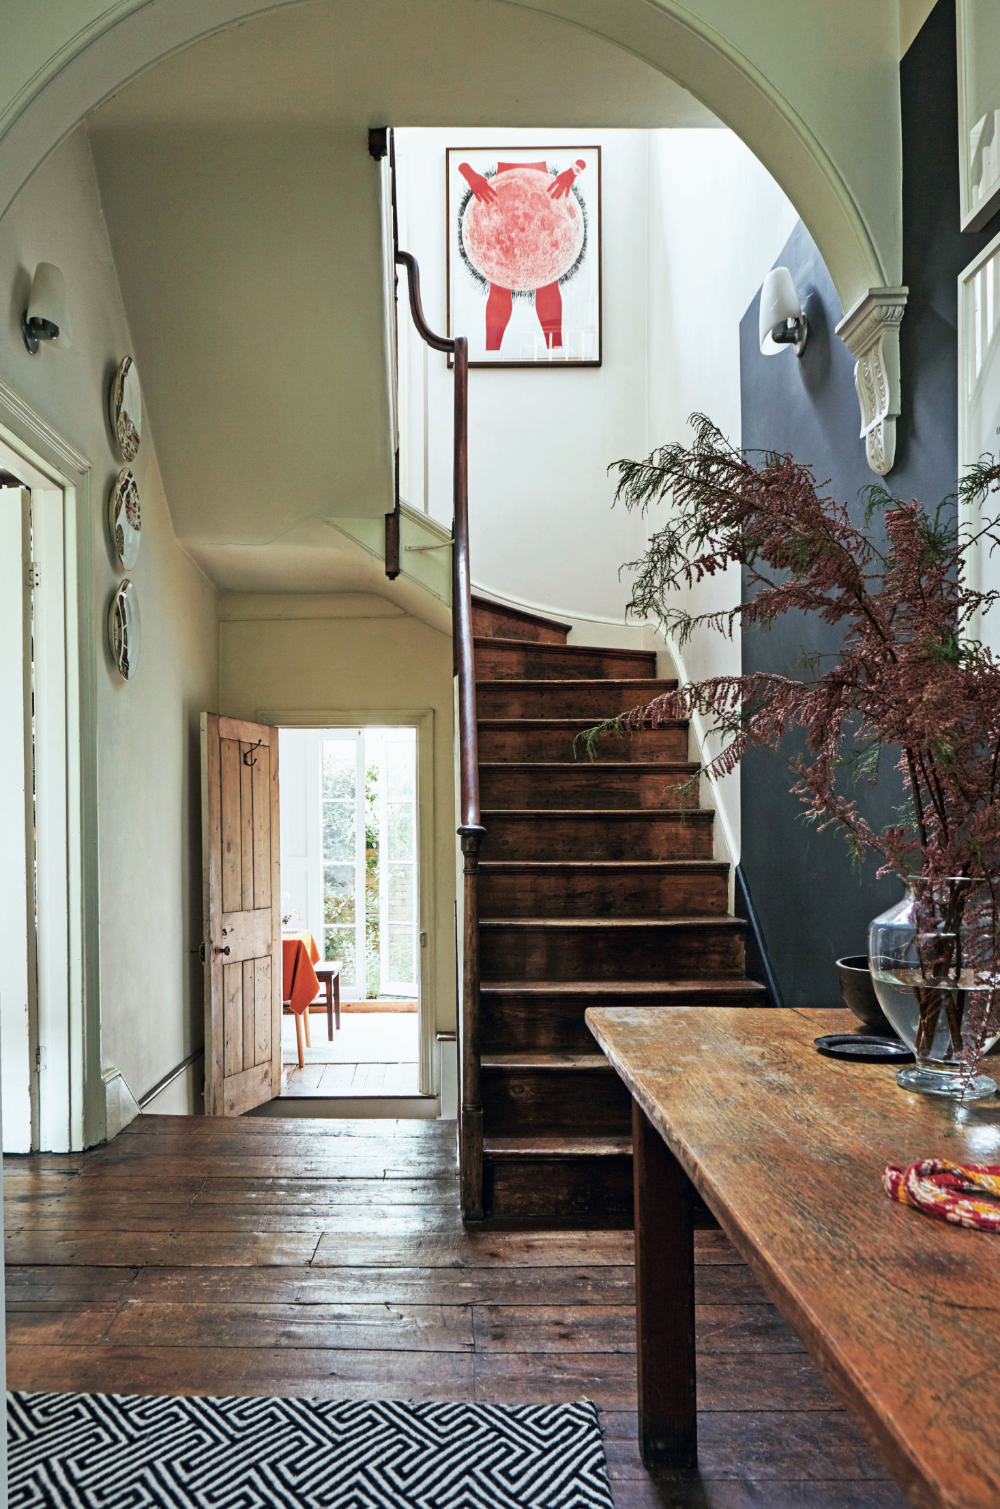 Stylish timeless British interiors from the Perfect English Townhouse book